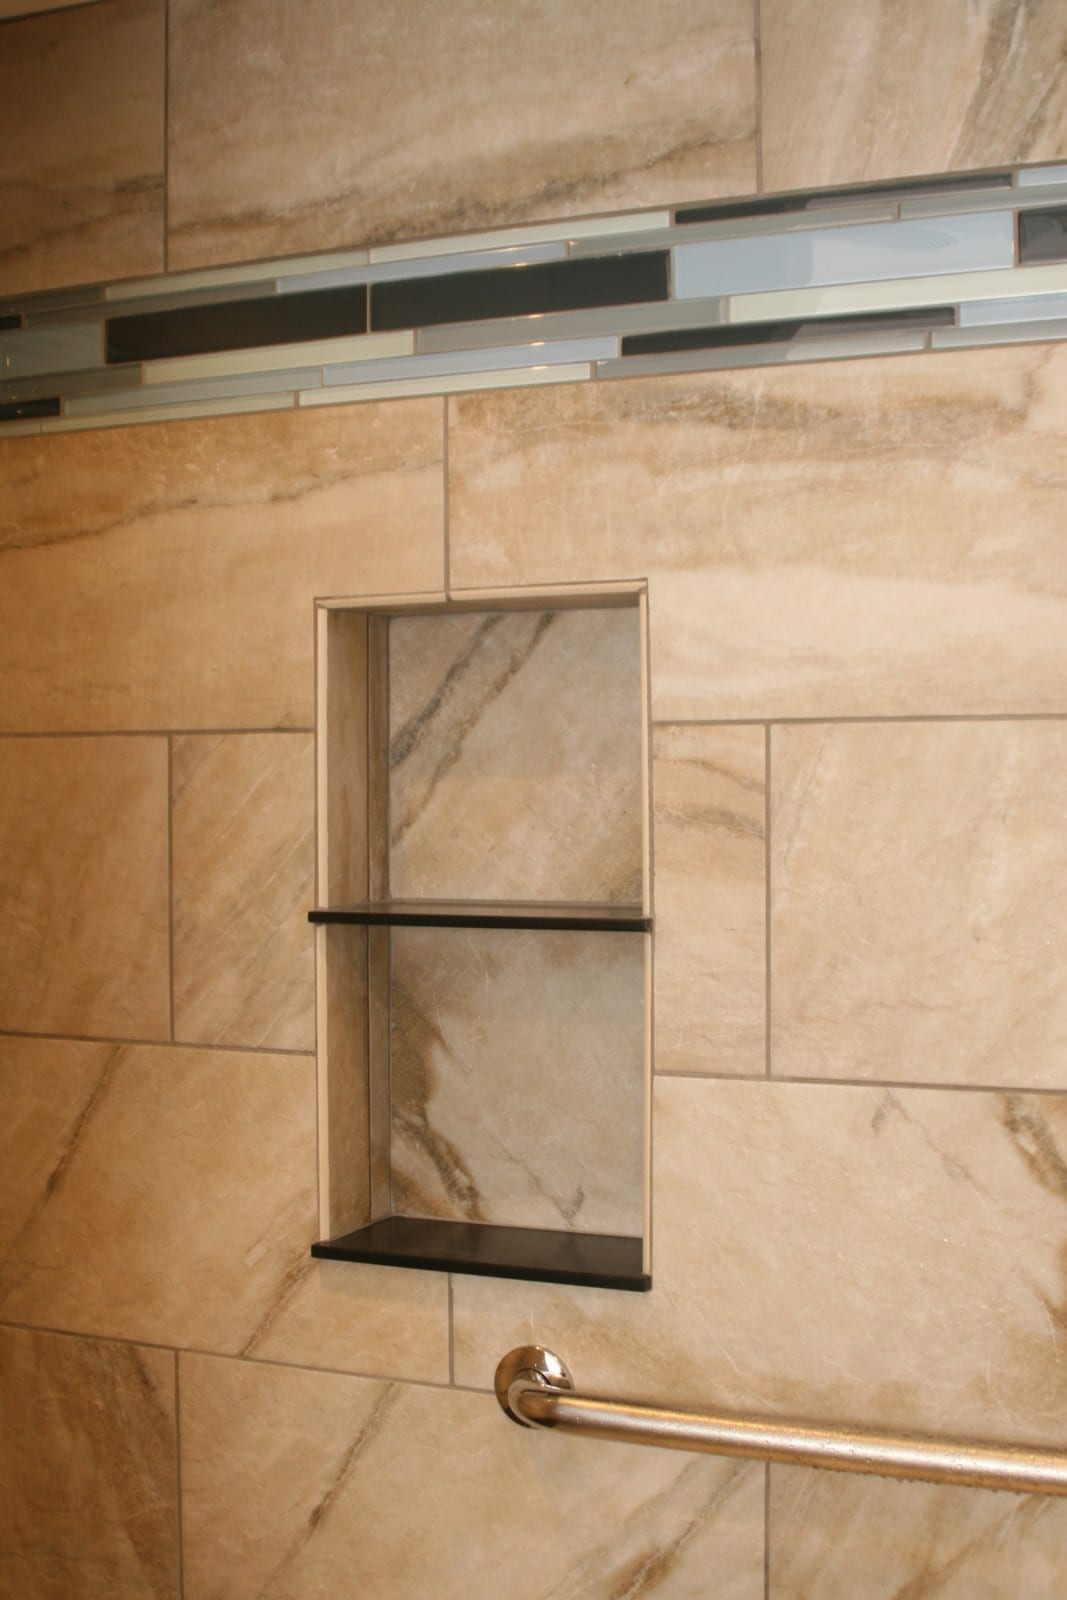 shower_niche_grab bar